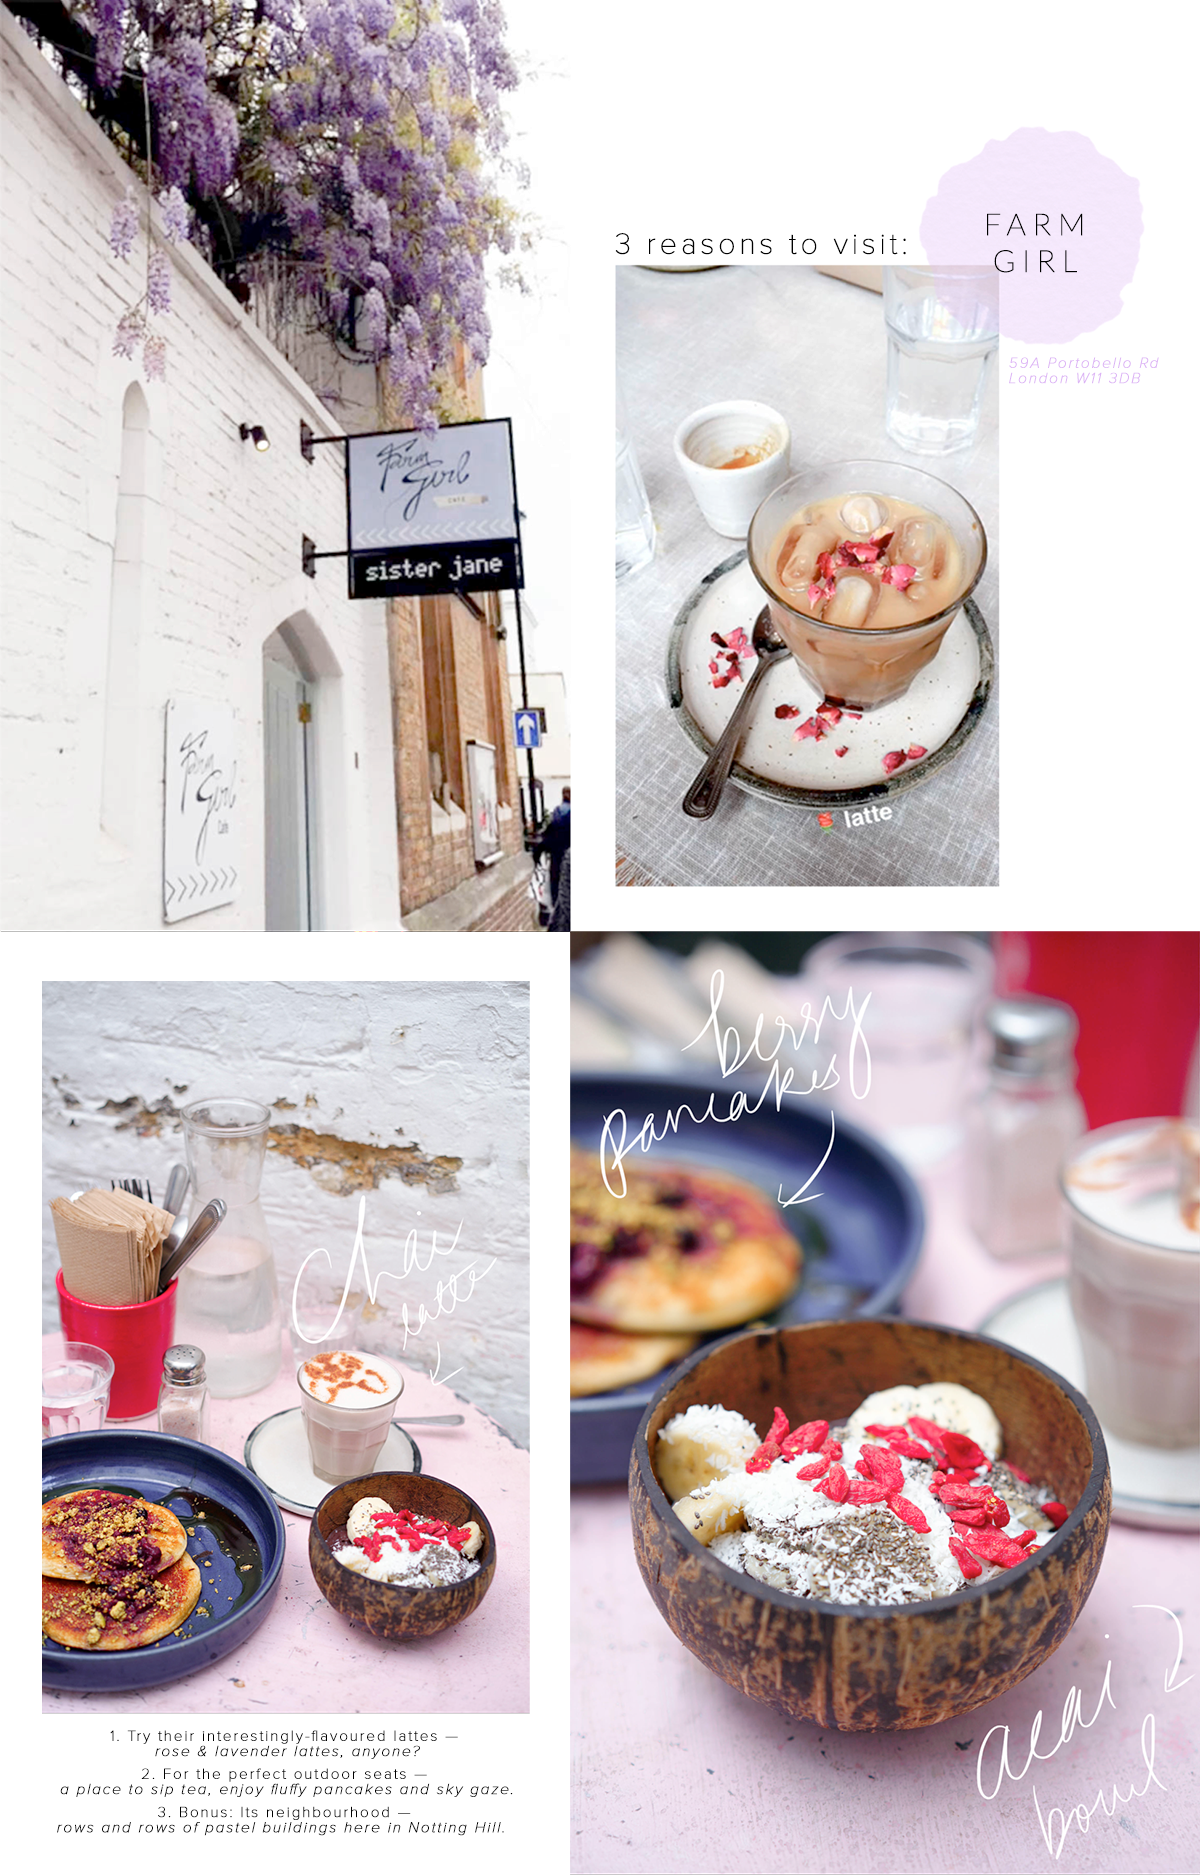 London cafe: FARM GIRL  1. Try their interestingly-flavoured lattes — rose & lavender lattes, anyone?  2. For the perfect outdoor seats — a place to sip tea, enjoy fluffy pancakes and sky gaze.  3. Bonus: Its neighbourhood — rows and rows of pastel buildings here in Notting Hill.